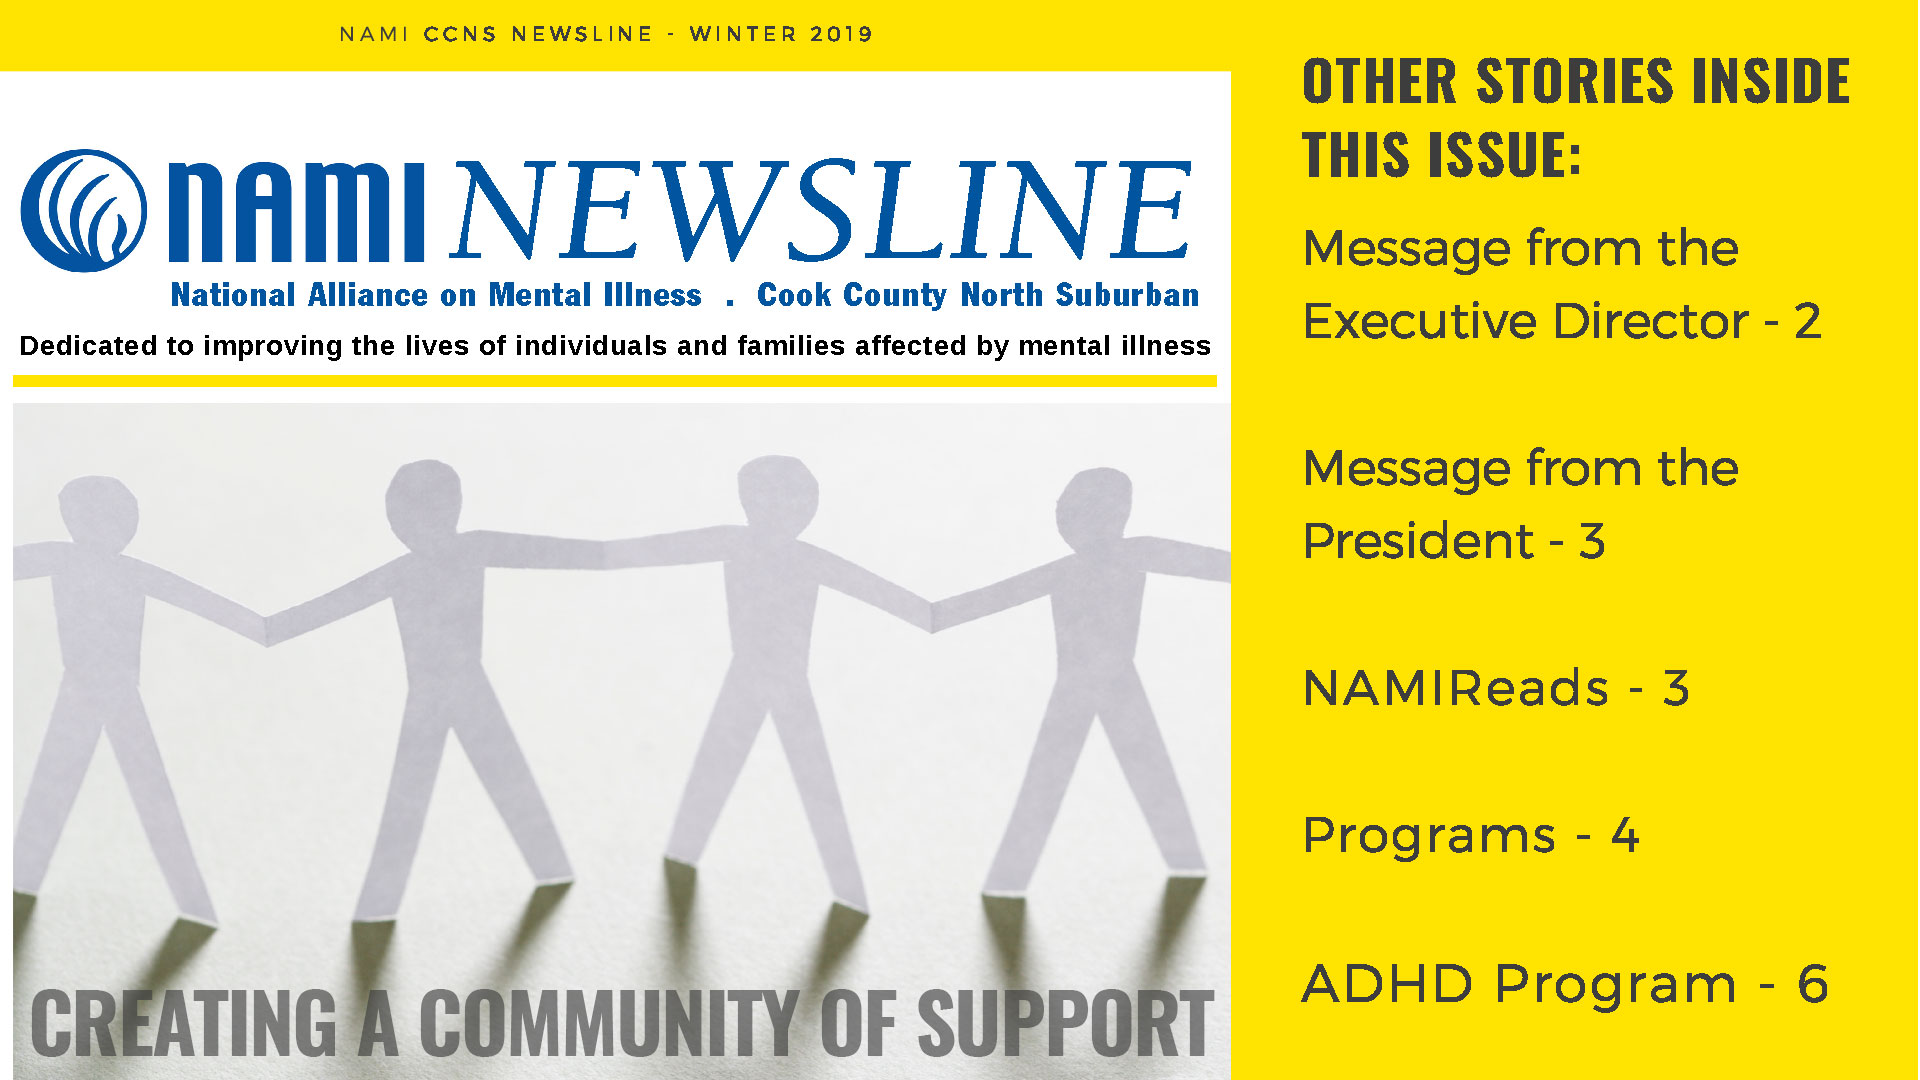 Winter 2019 | NAMI Newsline